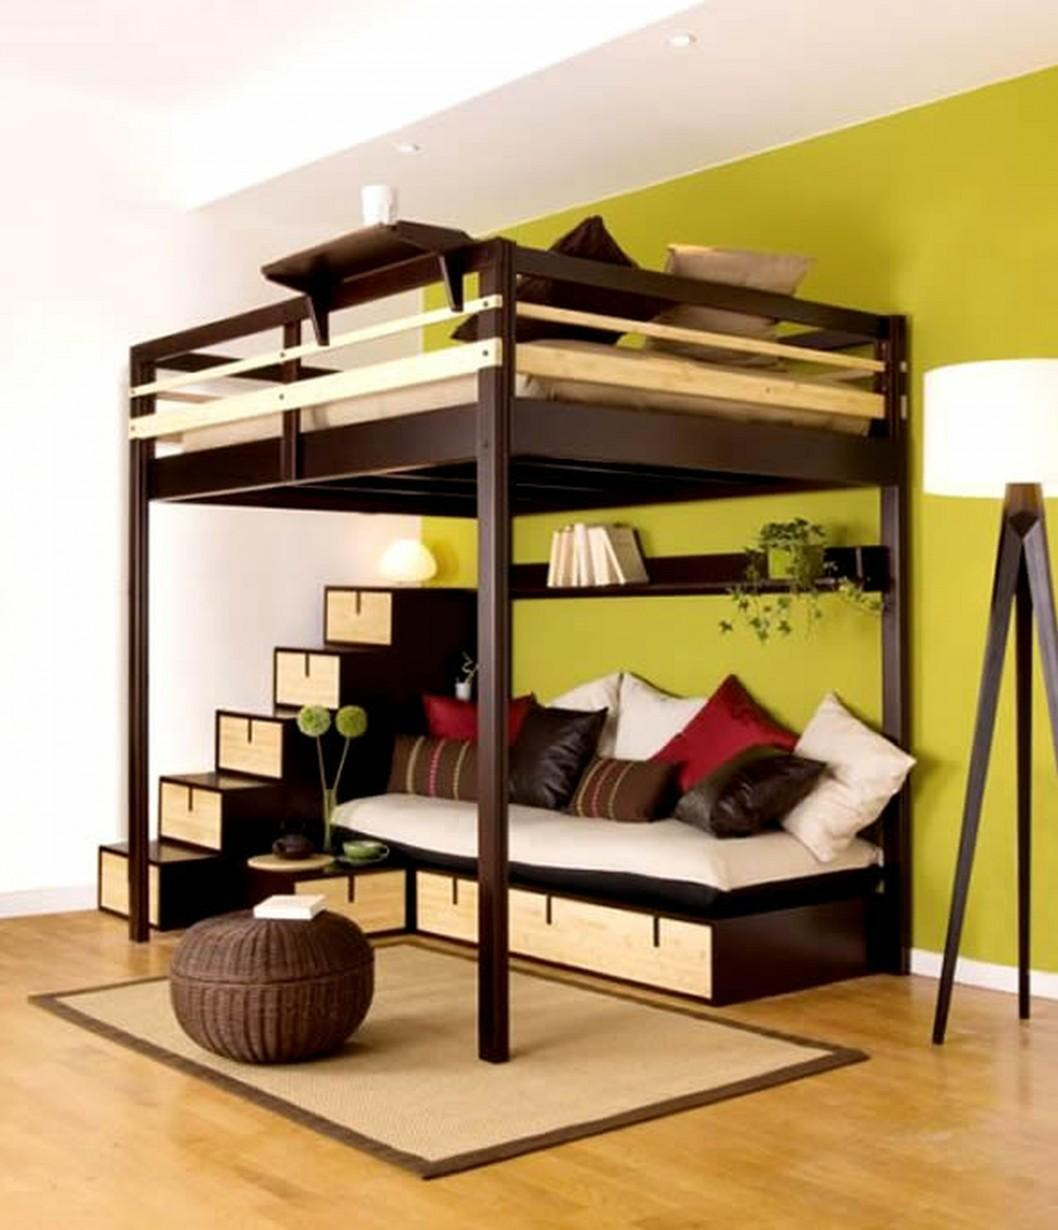 Besf Ideas Find Some Cool Cheap Room